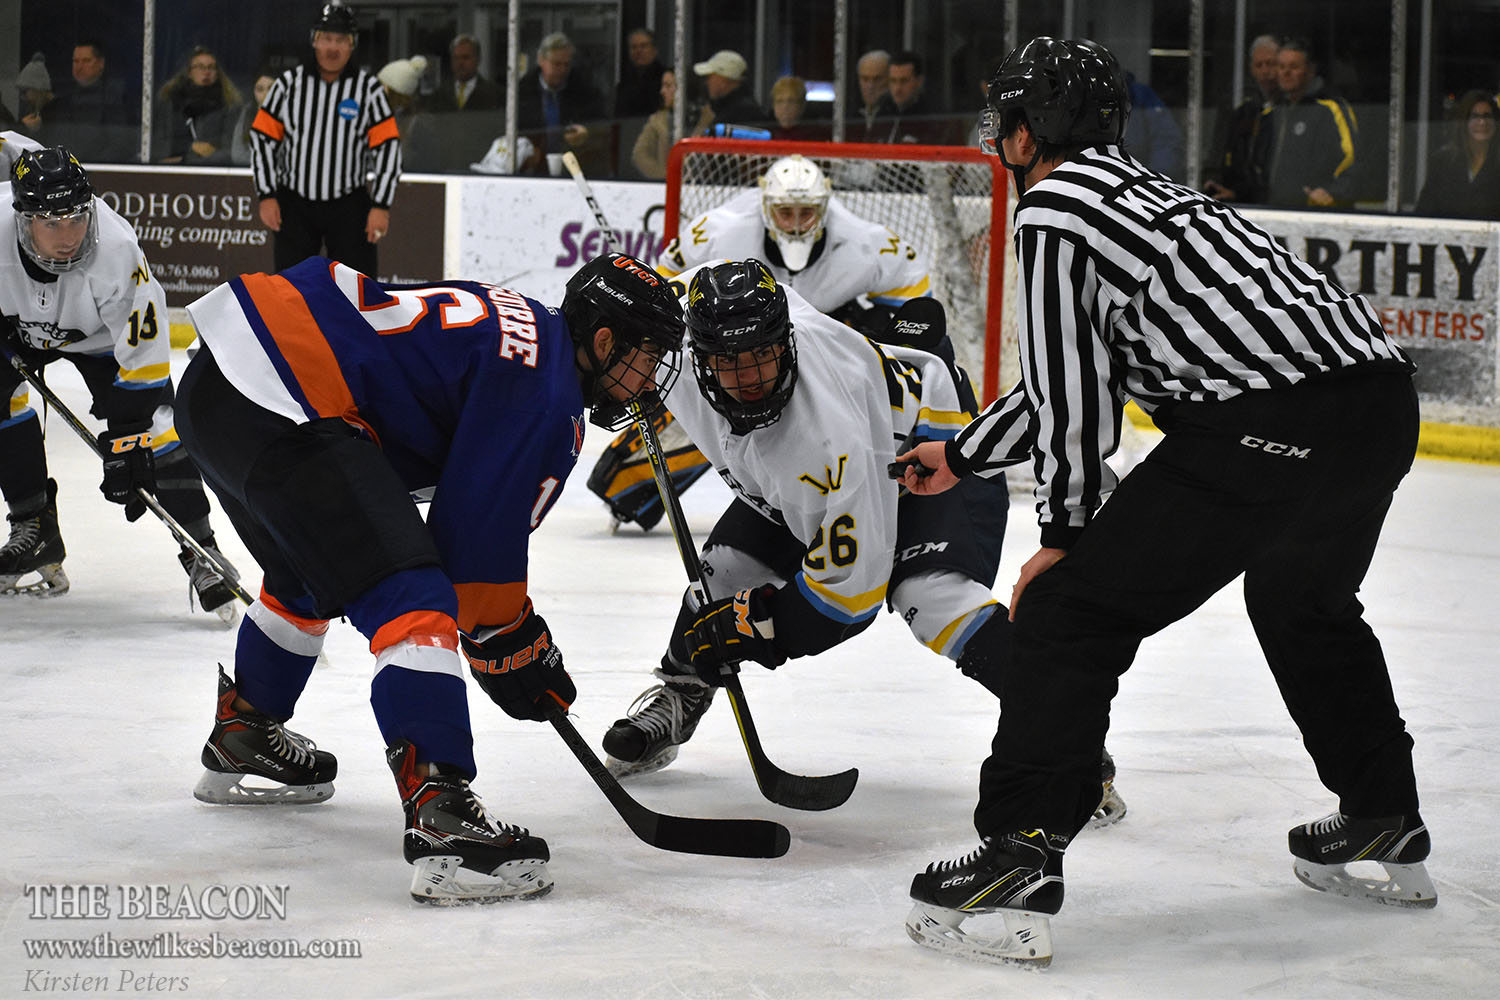 Wilkes fell to Utica College in the final four seconds of play on Dec. 7, but tied with Elmira College on Jan. 21 to secure their first place standing in the United Collegiate Hockey Conference (UCHC) over second-place Utica.